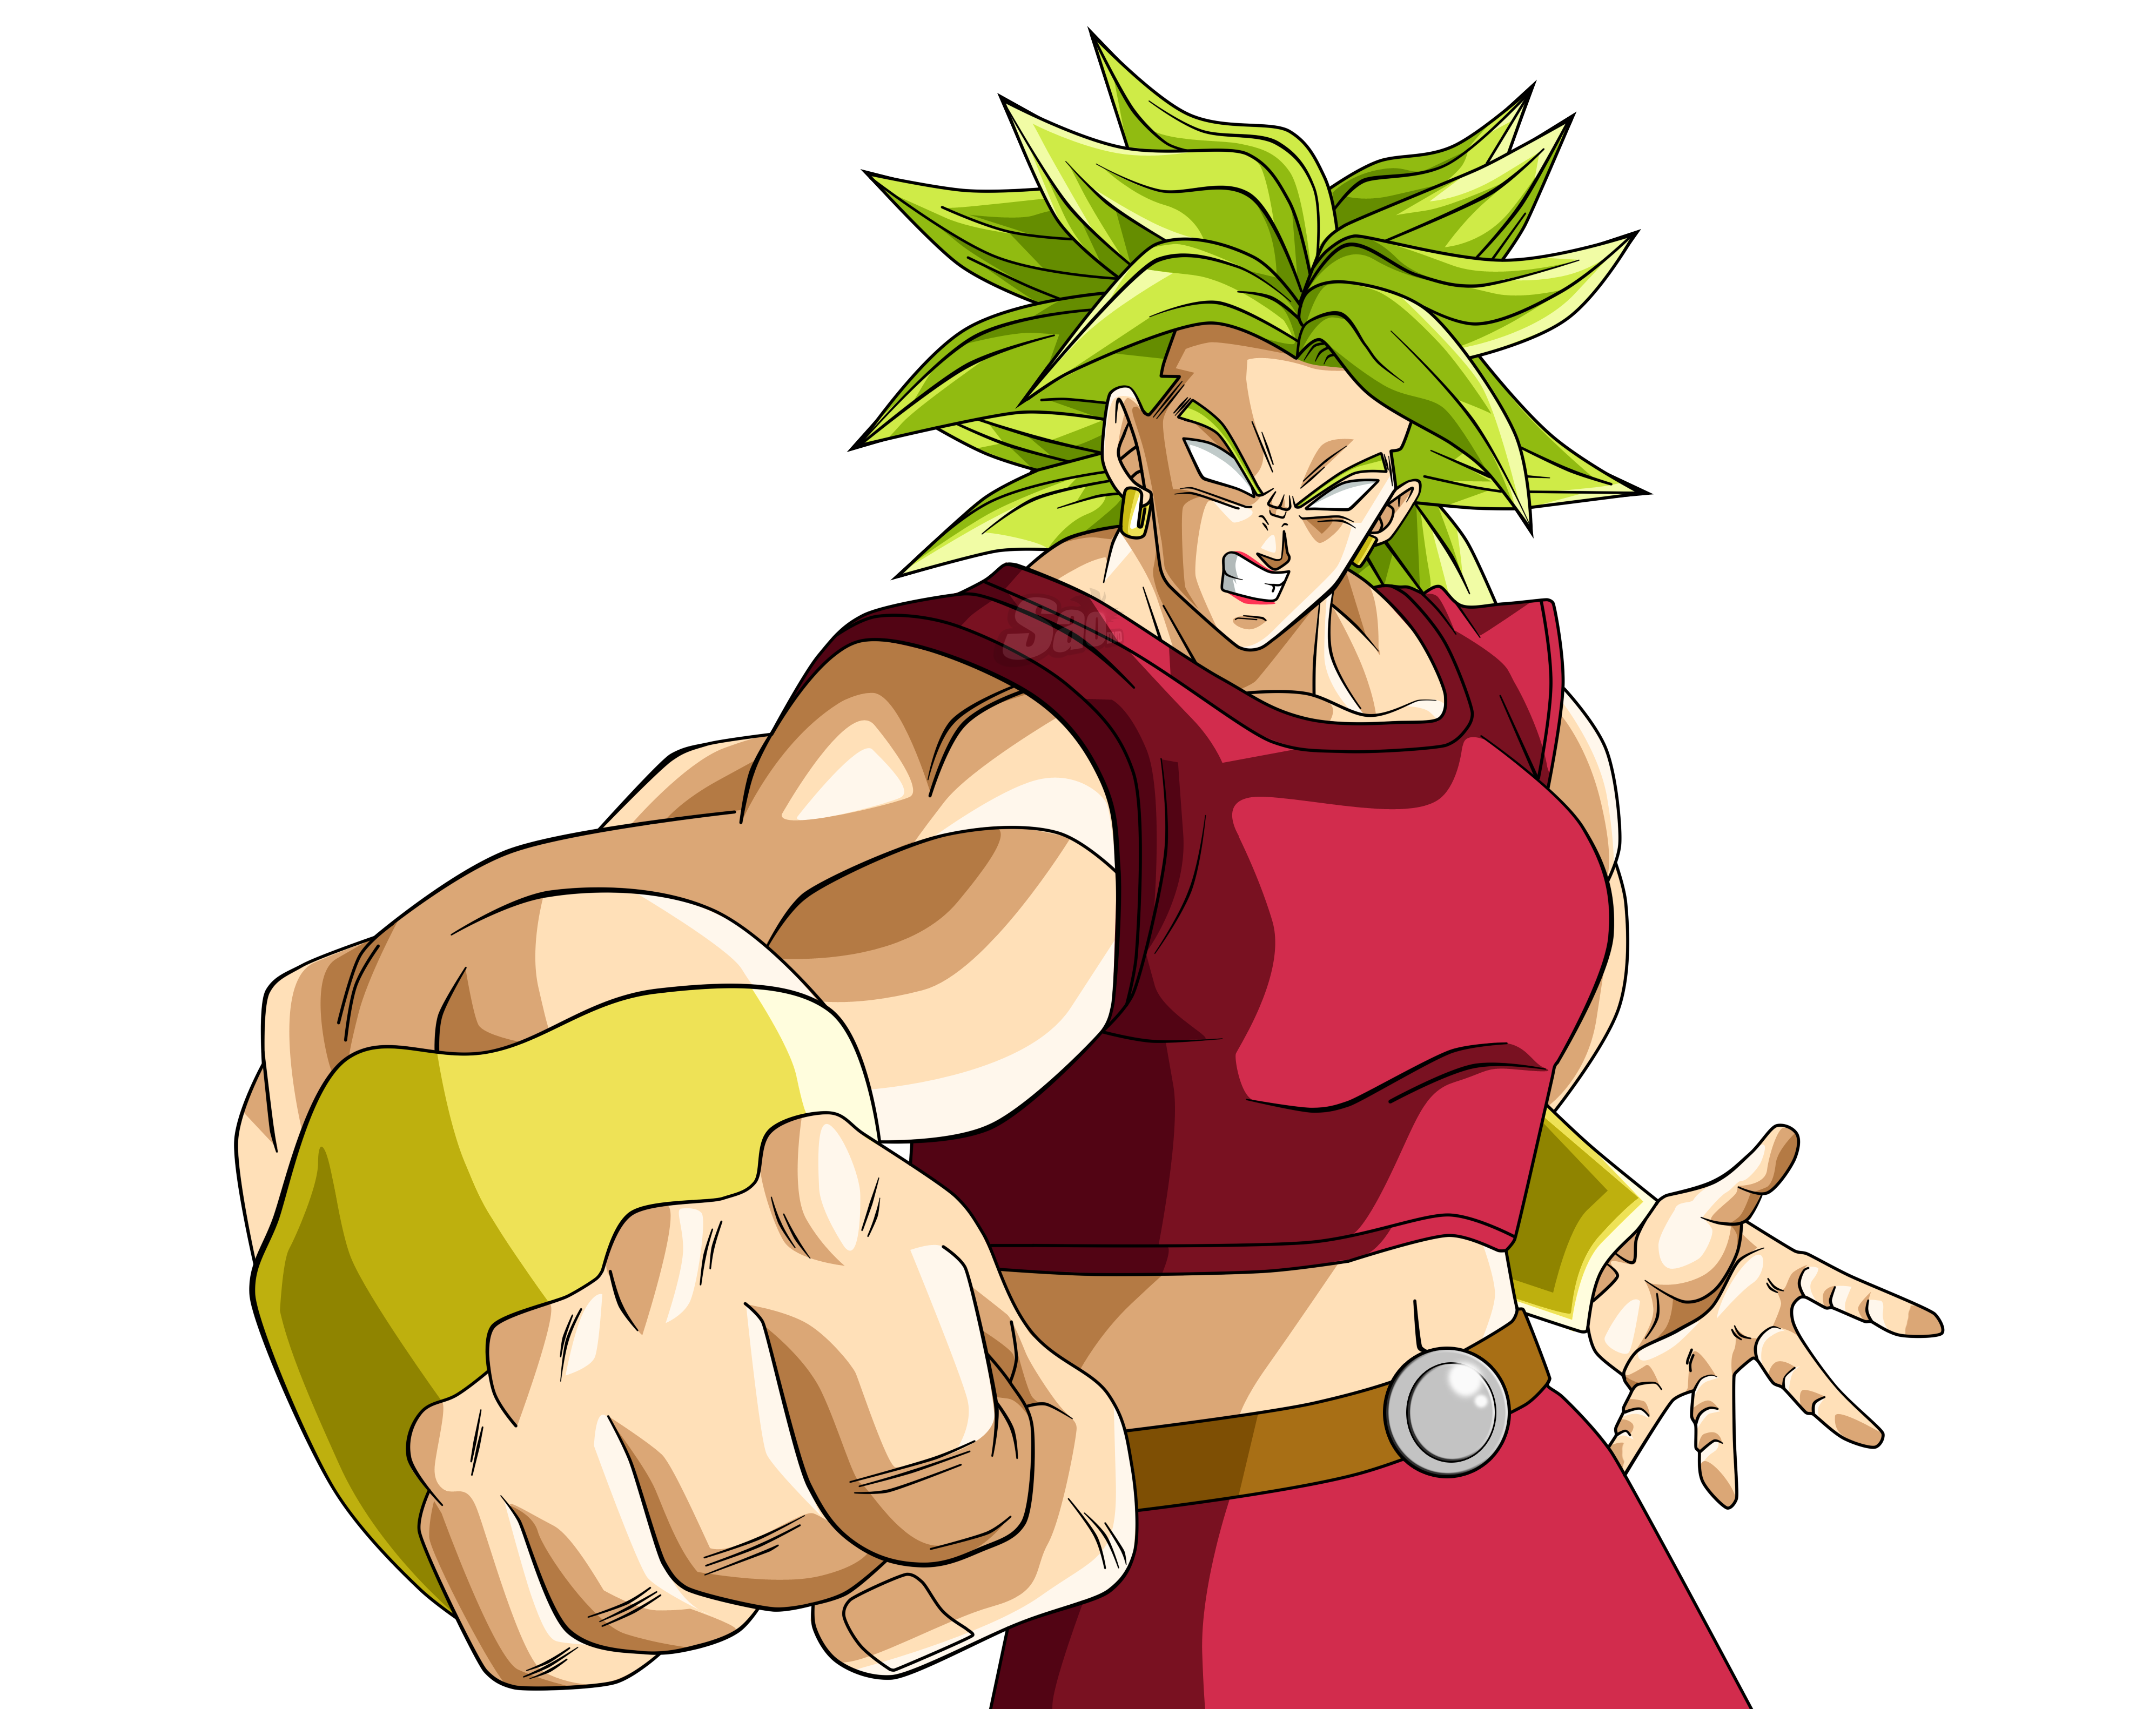 Download Dragon Ball Broly Image Hq Png Image Freepngimg